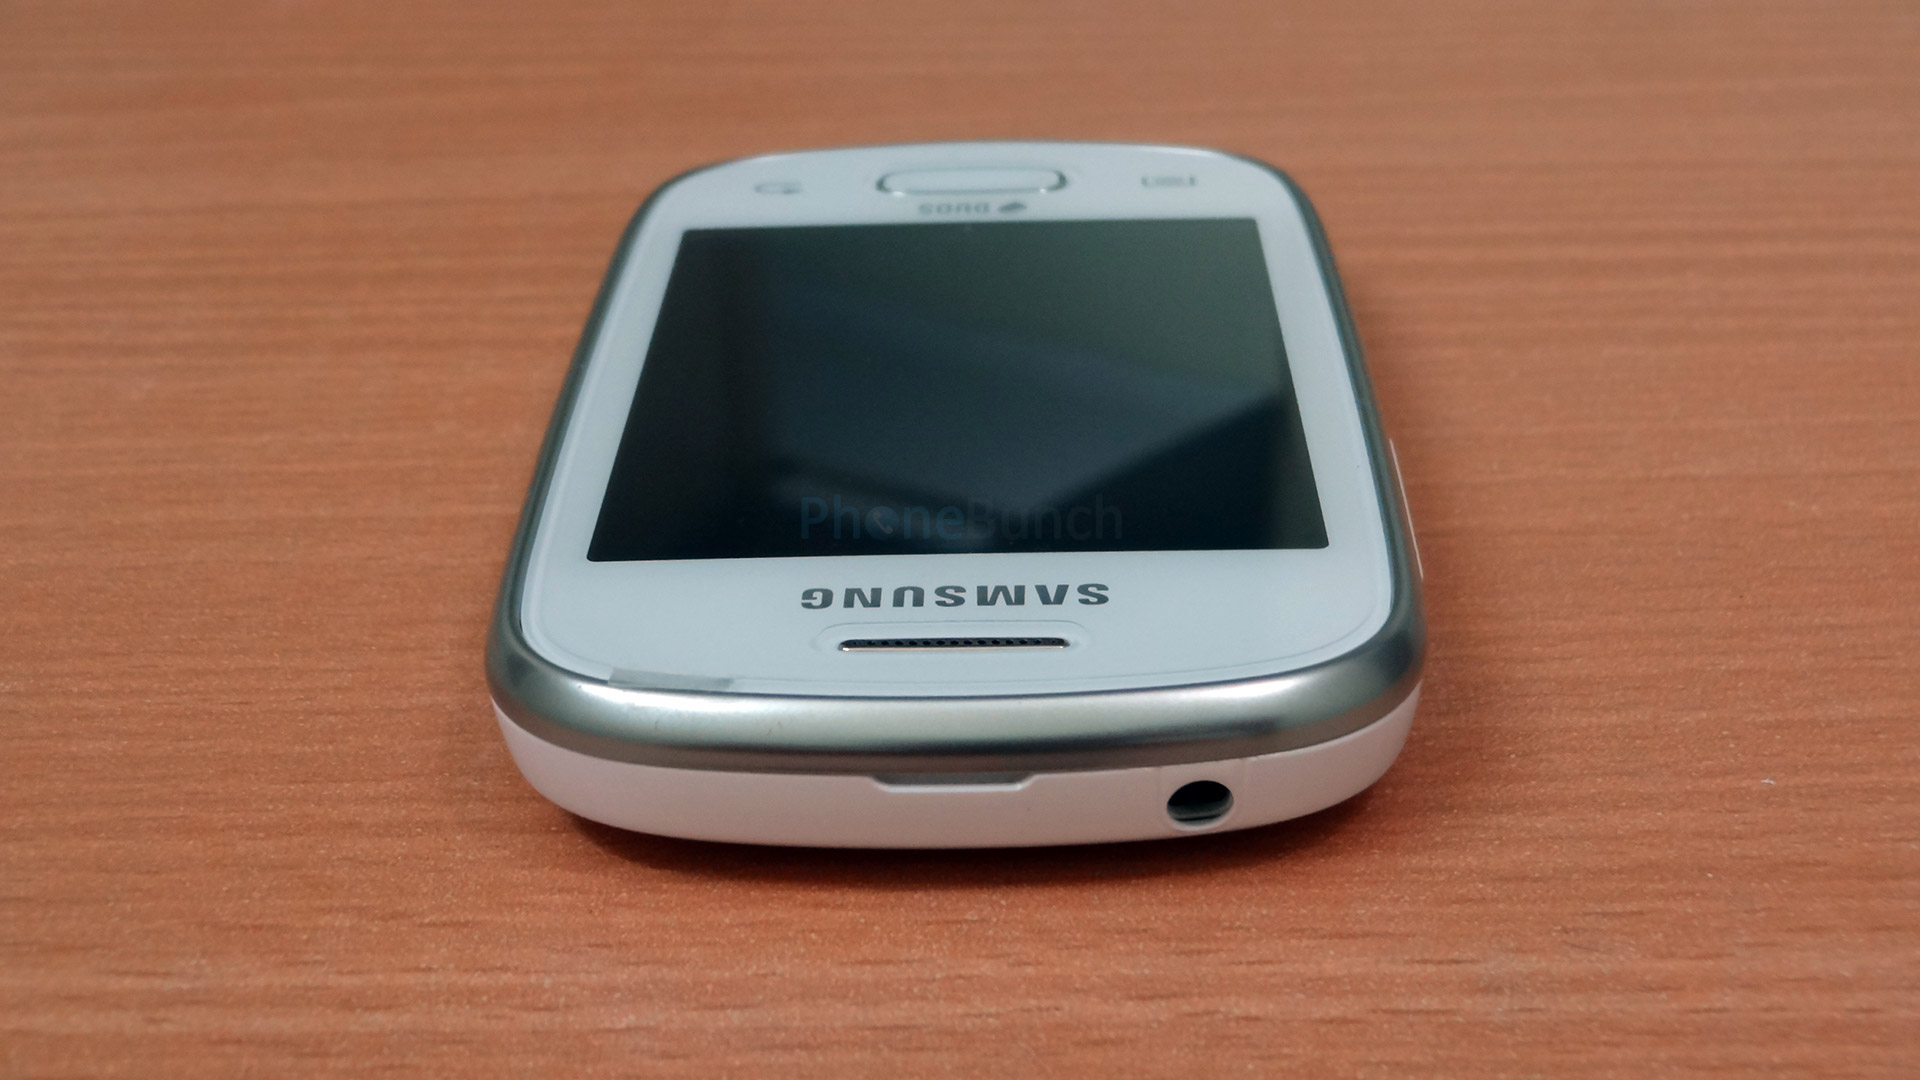 samsung galaxy star s5282 - photo #24